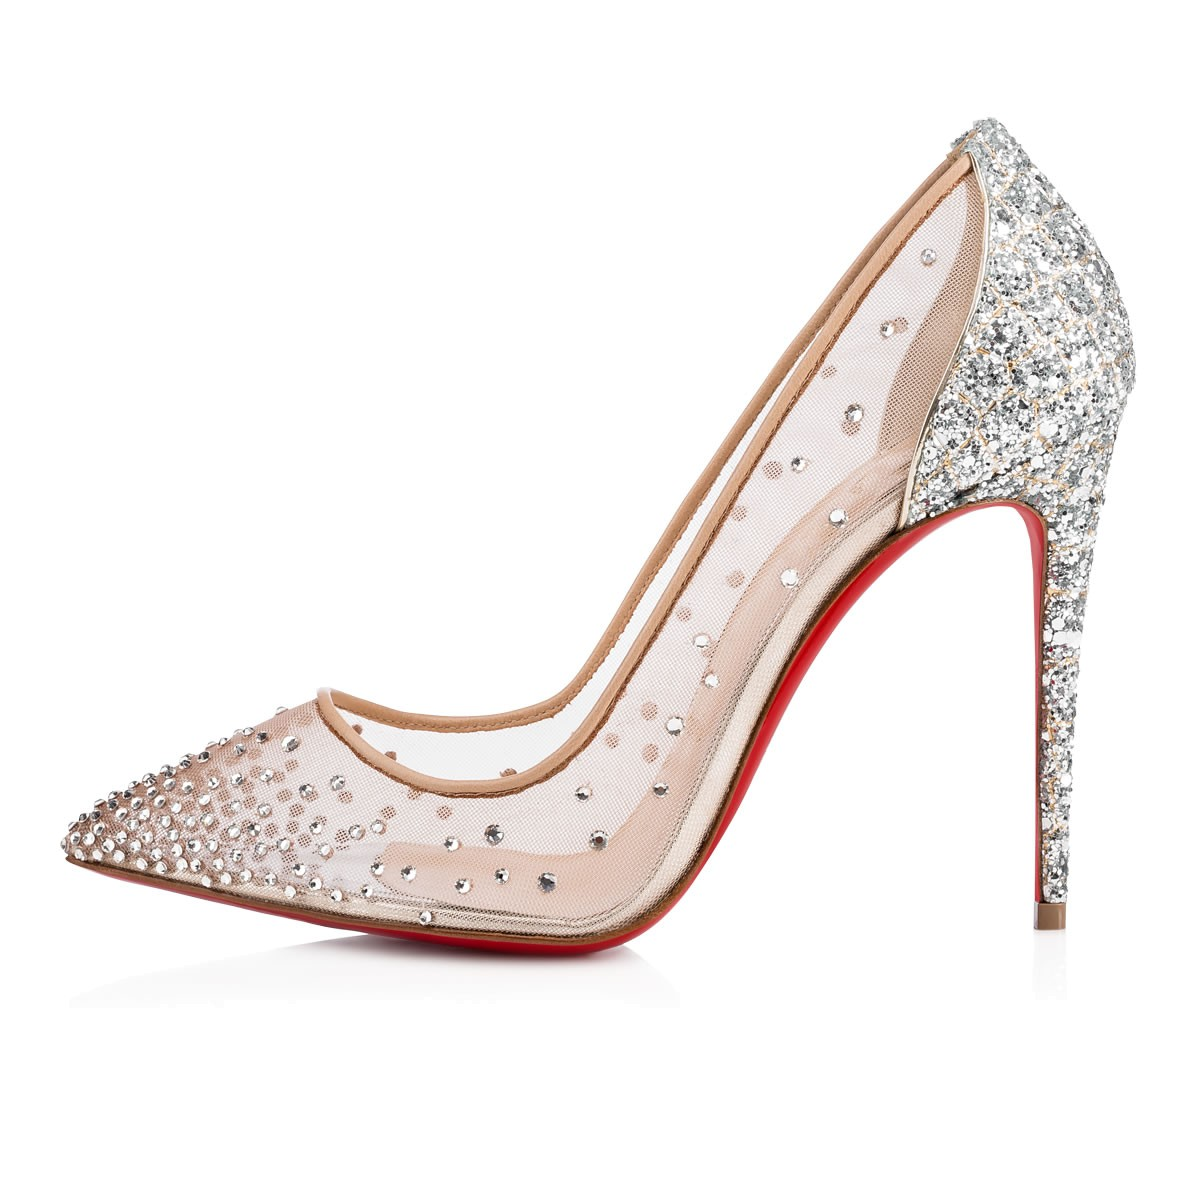 d3f369ac4e1 FOLLIES STRASS 100 VERSION CRYSTAL Strass - Women Shoes ...